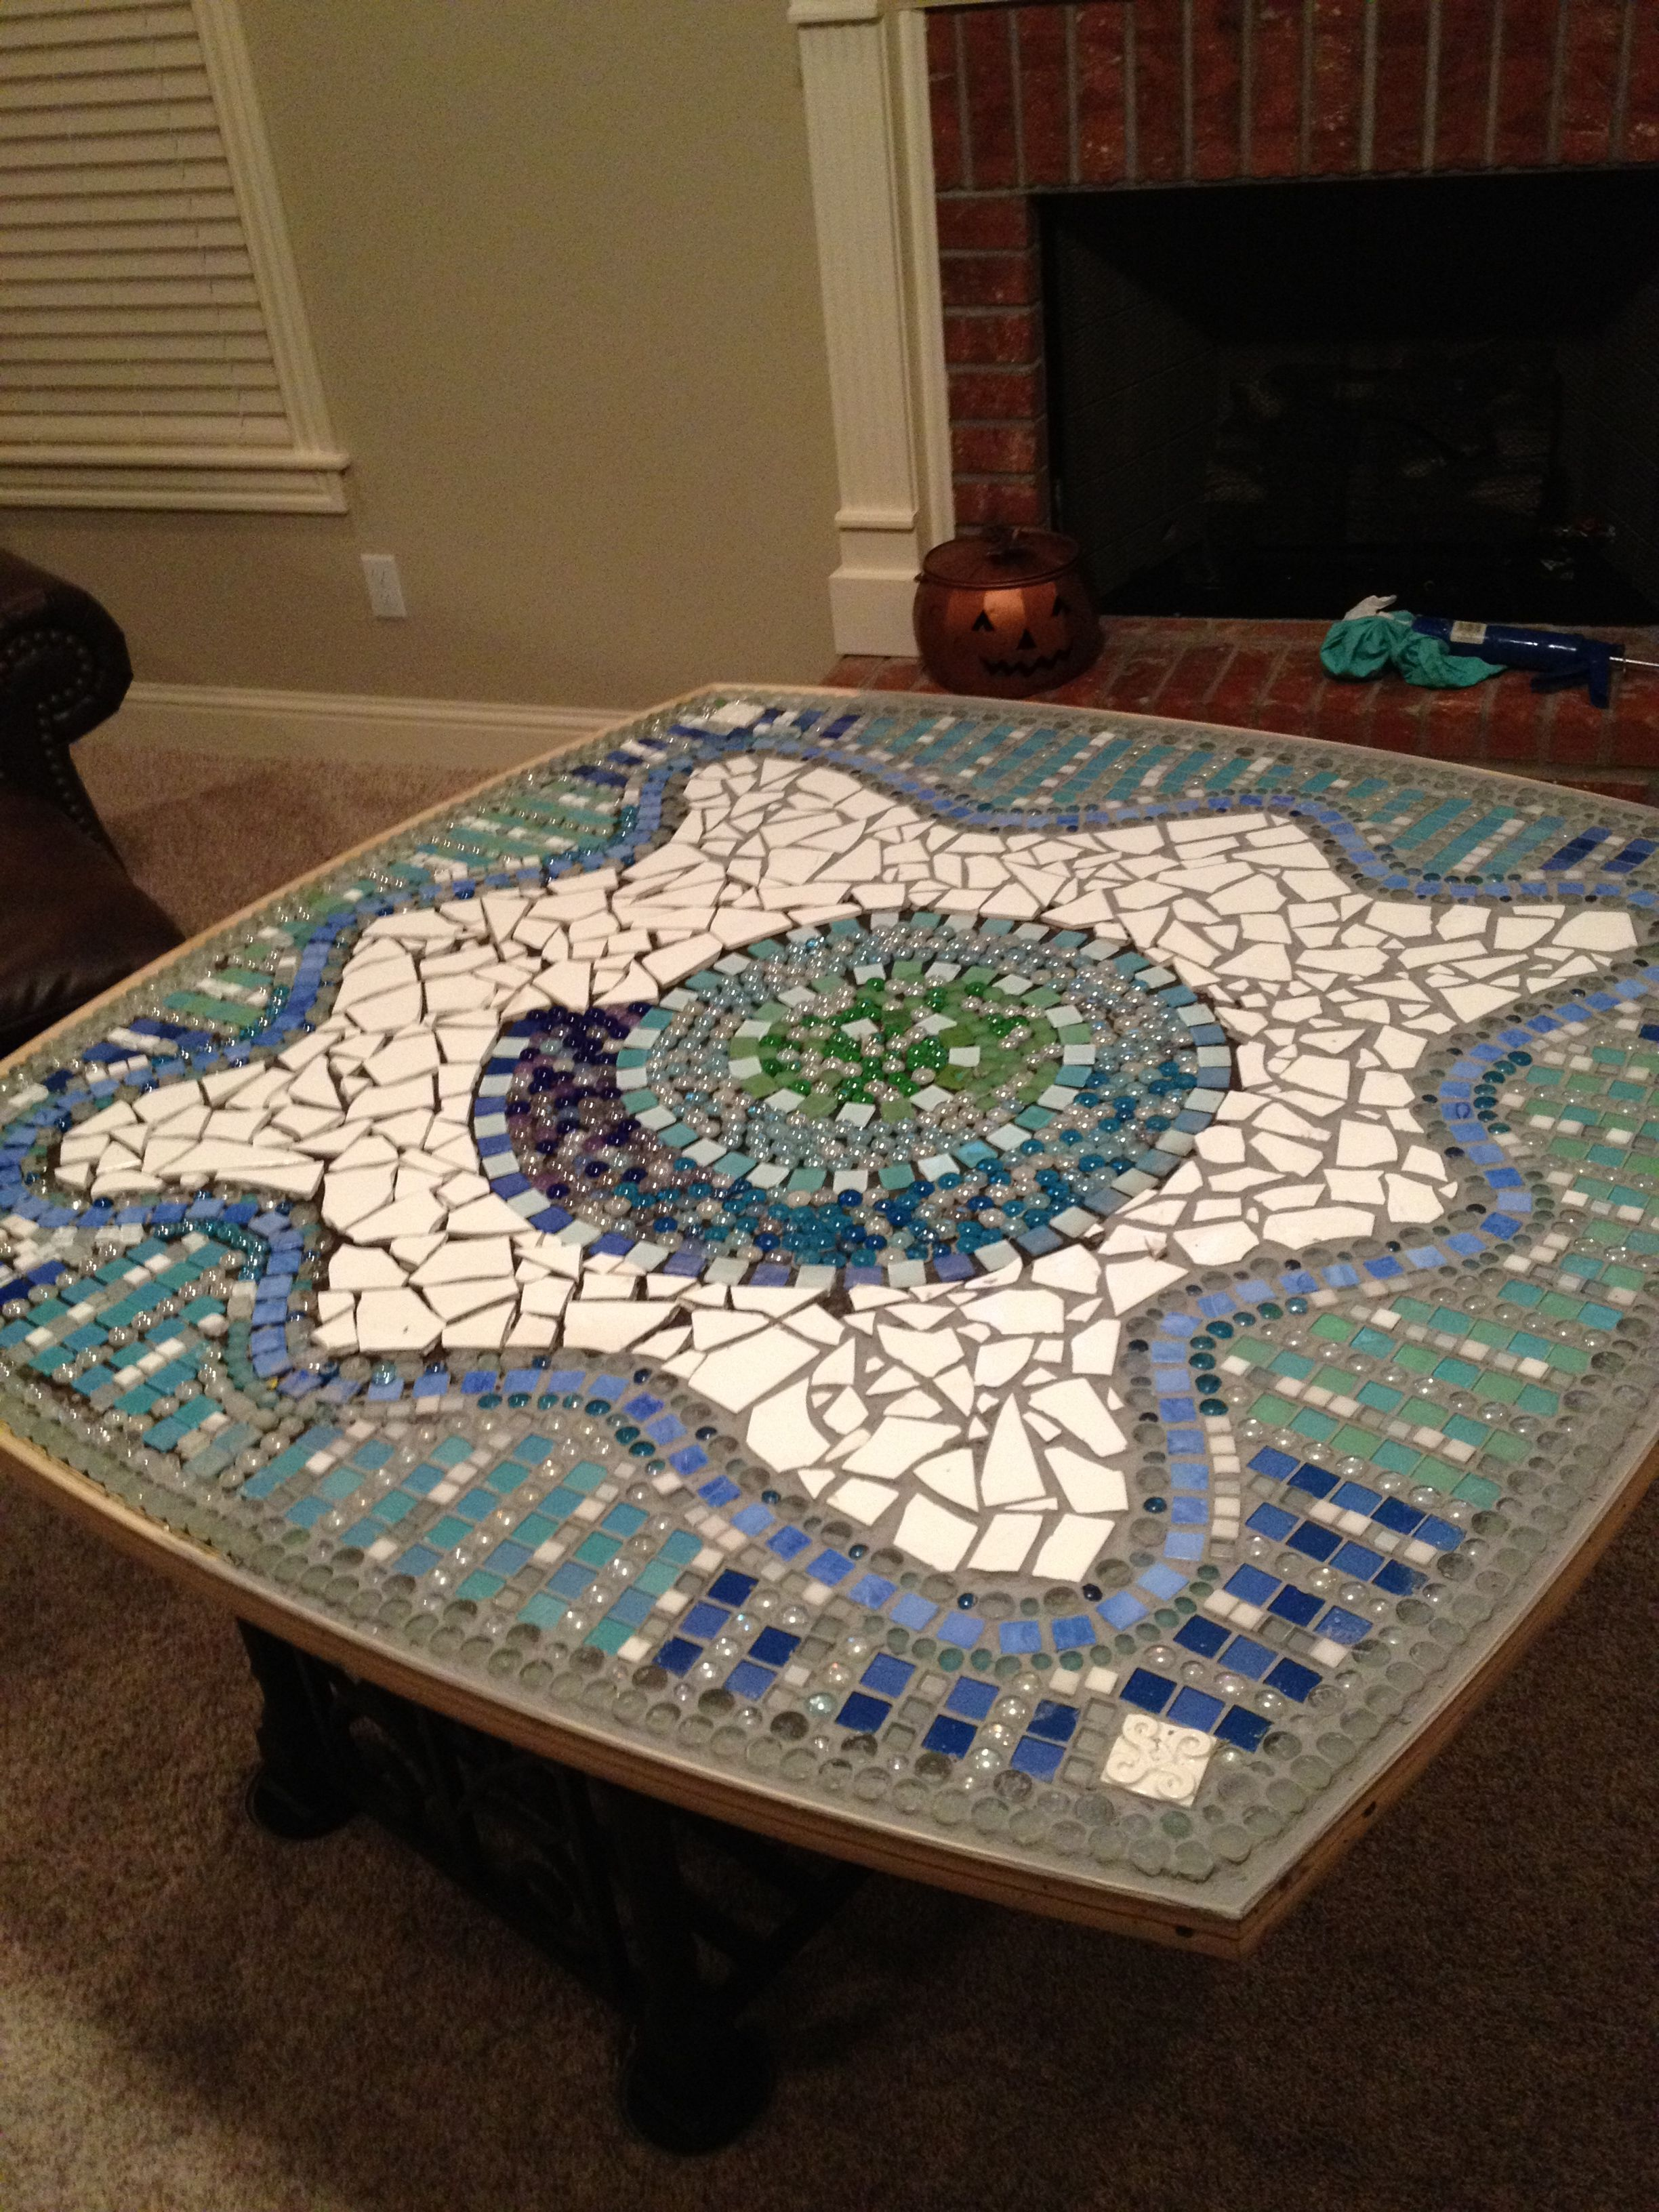 Pin By Laura Anderson On My First Home Mosaic Table Top Mosaic